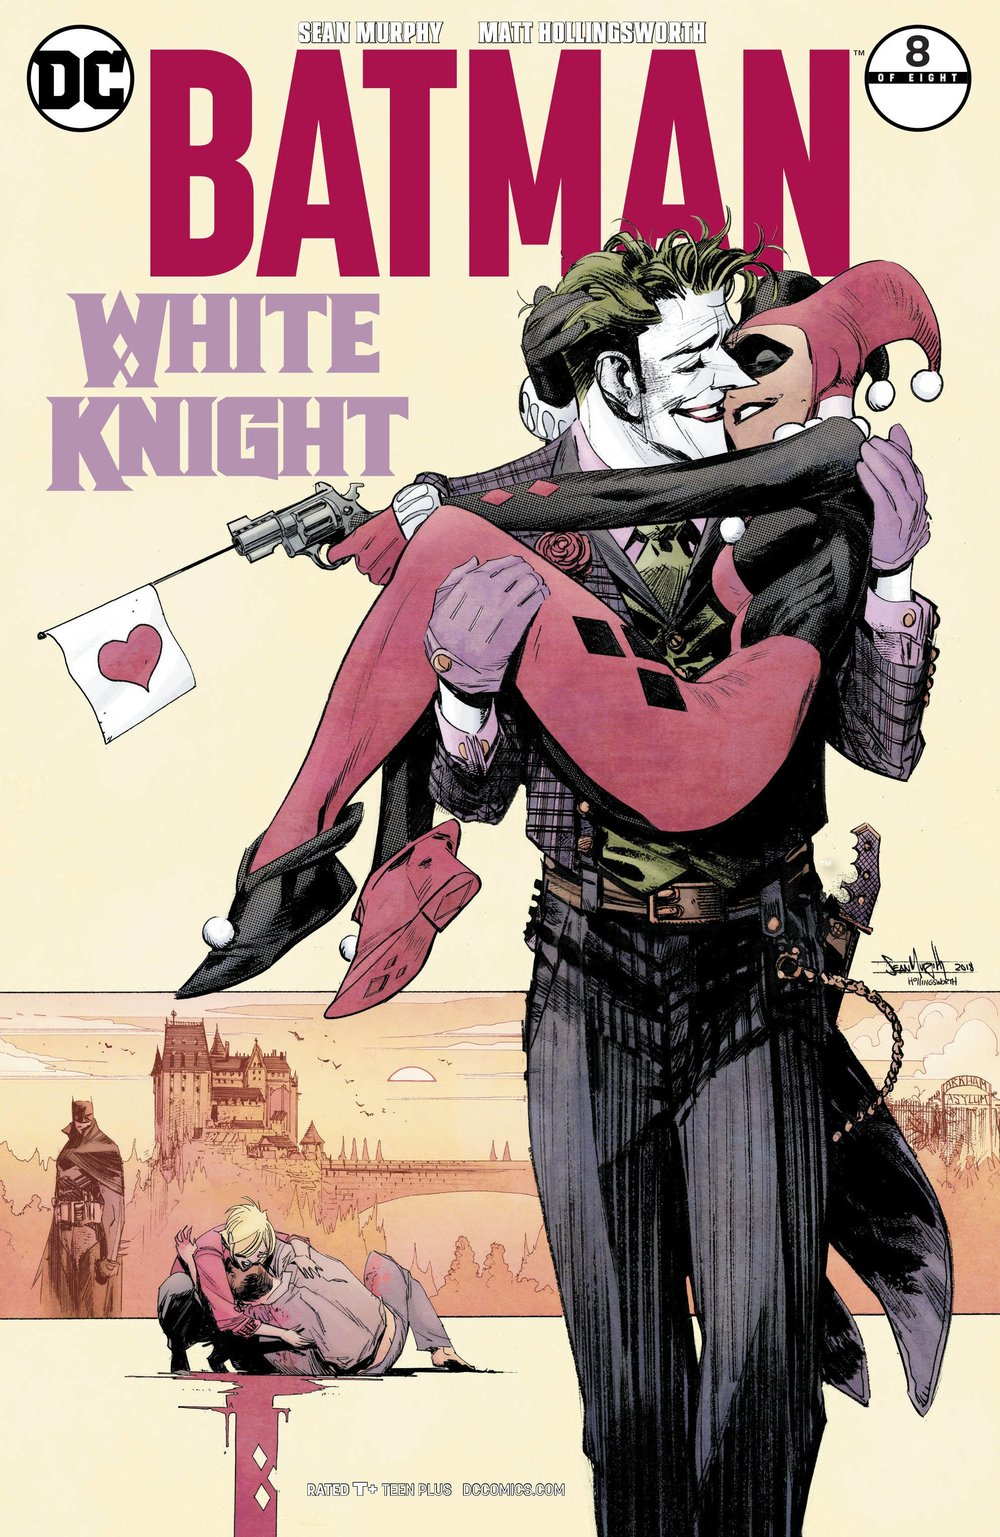 BATMAN WHITE KNIGHT 8 of 8 VAR ED.jpg